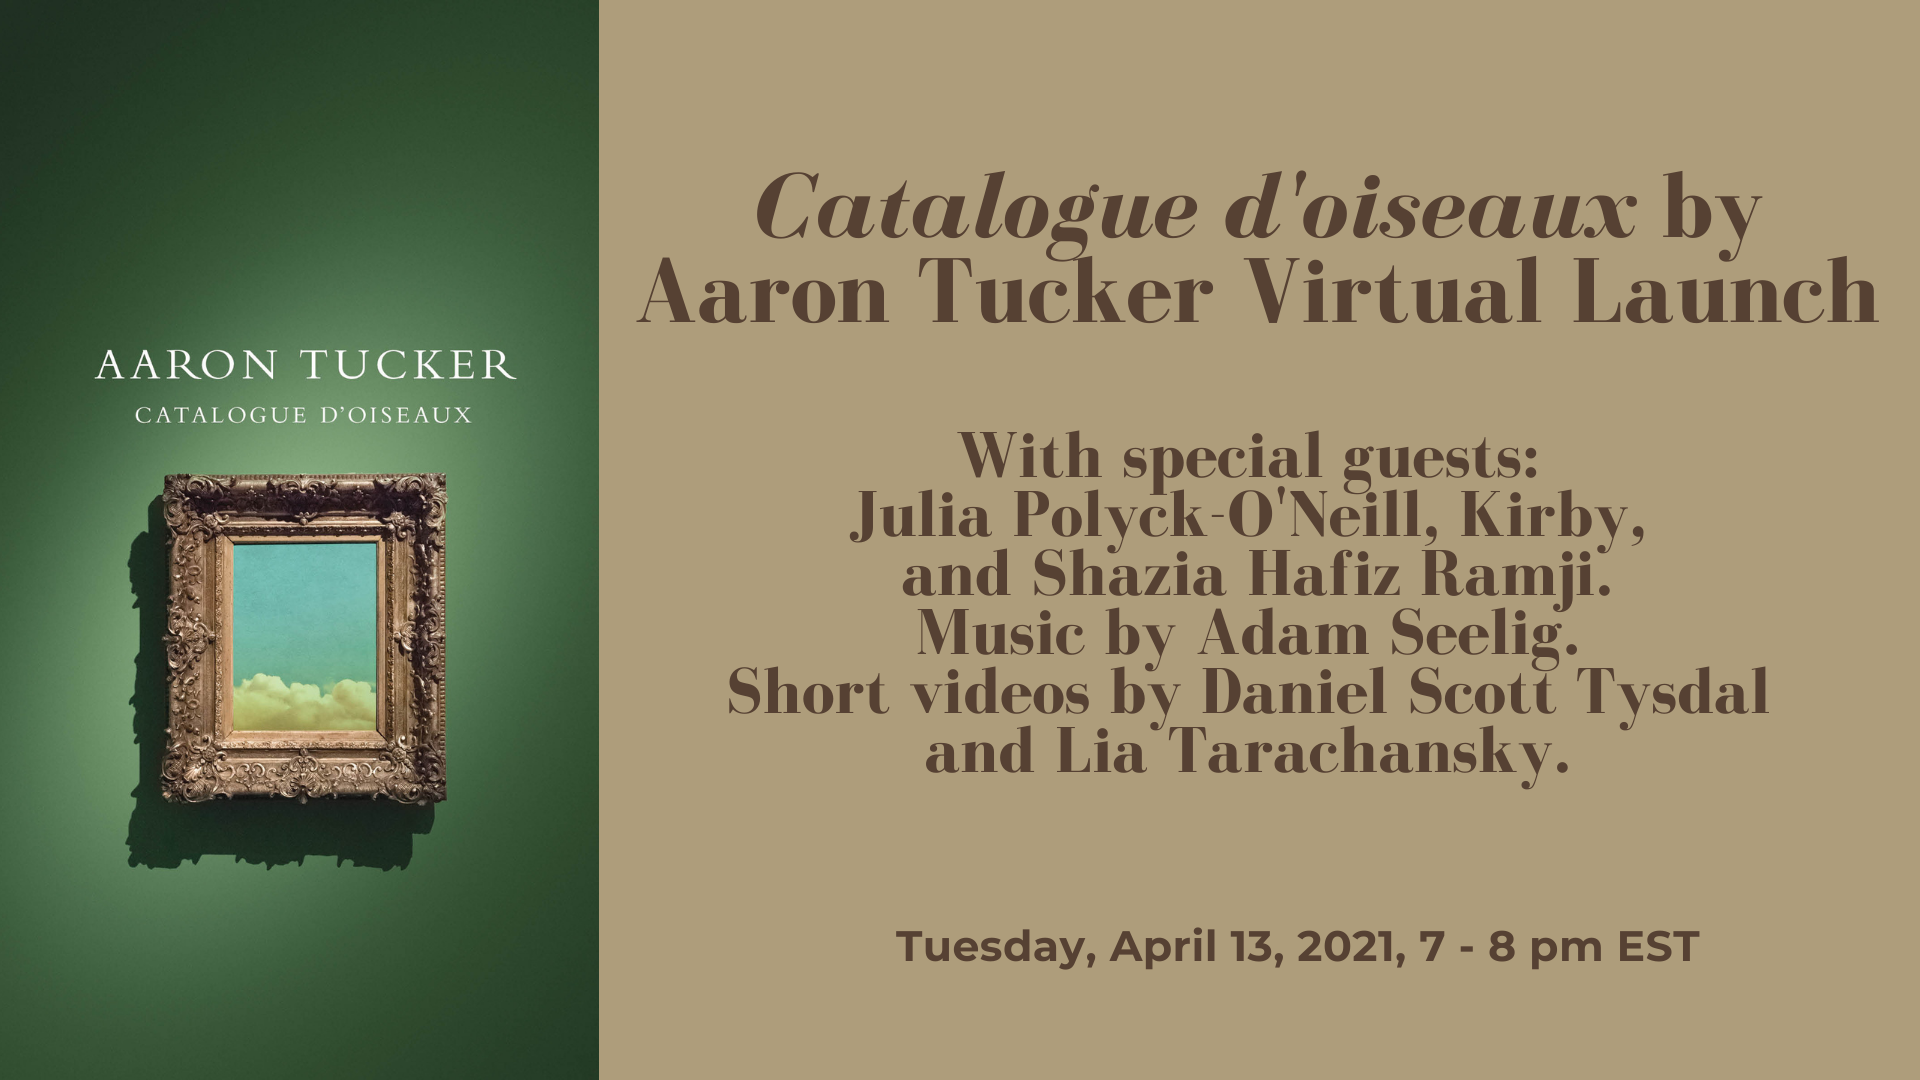 Catalogue d'oiseaux by Aaron Tucker Virtual Launch